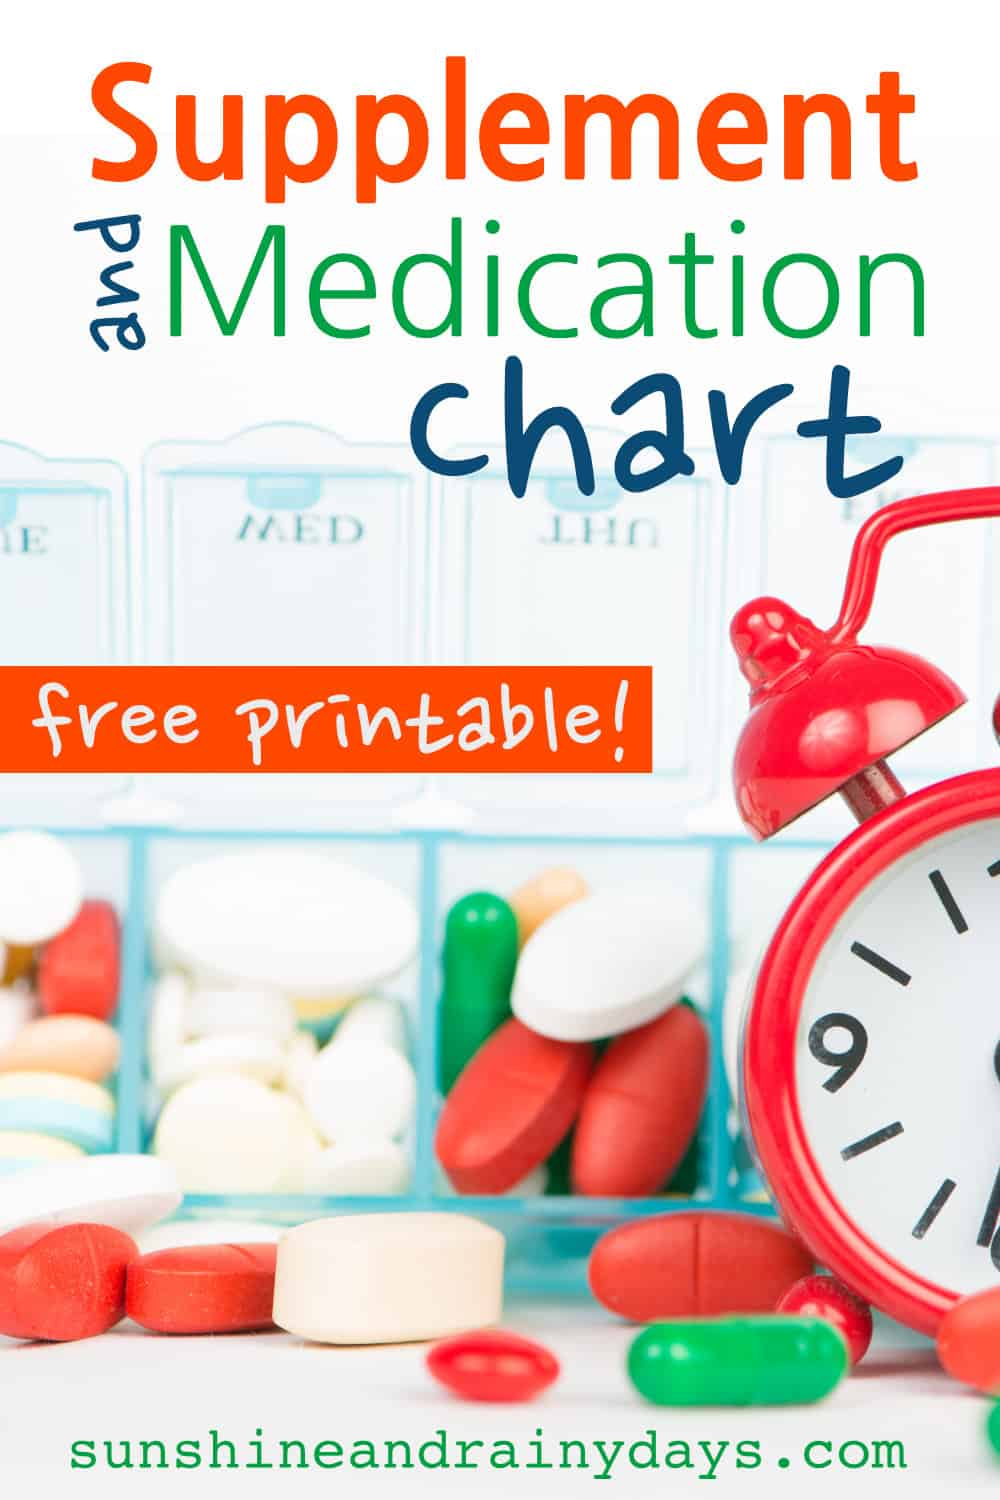 Sure I could make a list on plain Jane paper and list everything out but where's the fun in that? I decided to create my very own Supplement and Medication Chart Printable and, while I'm at it, I might as well make it fun enough to share with you!